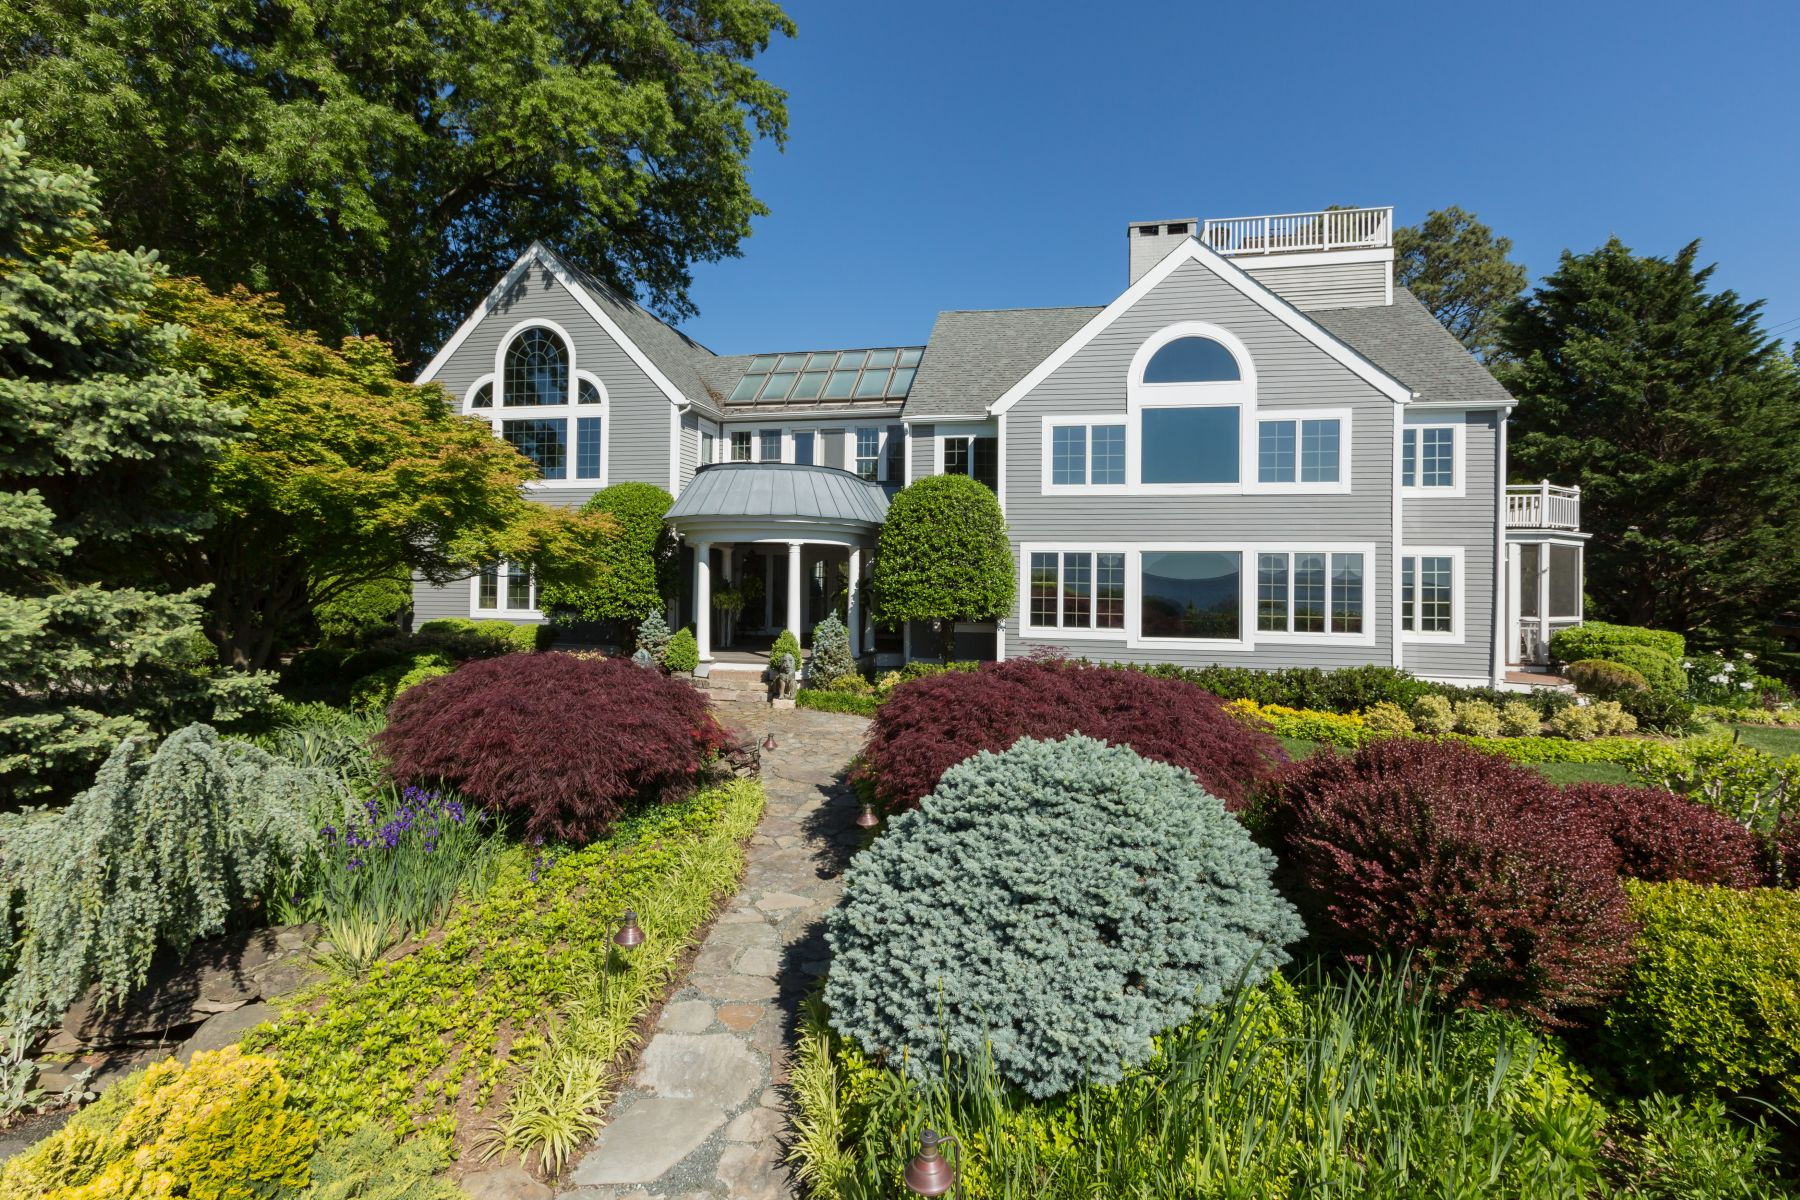 Single Family Home for Sale at 39 Bay Drive, Annapolis Annapolis, Maryland, 21403 United States